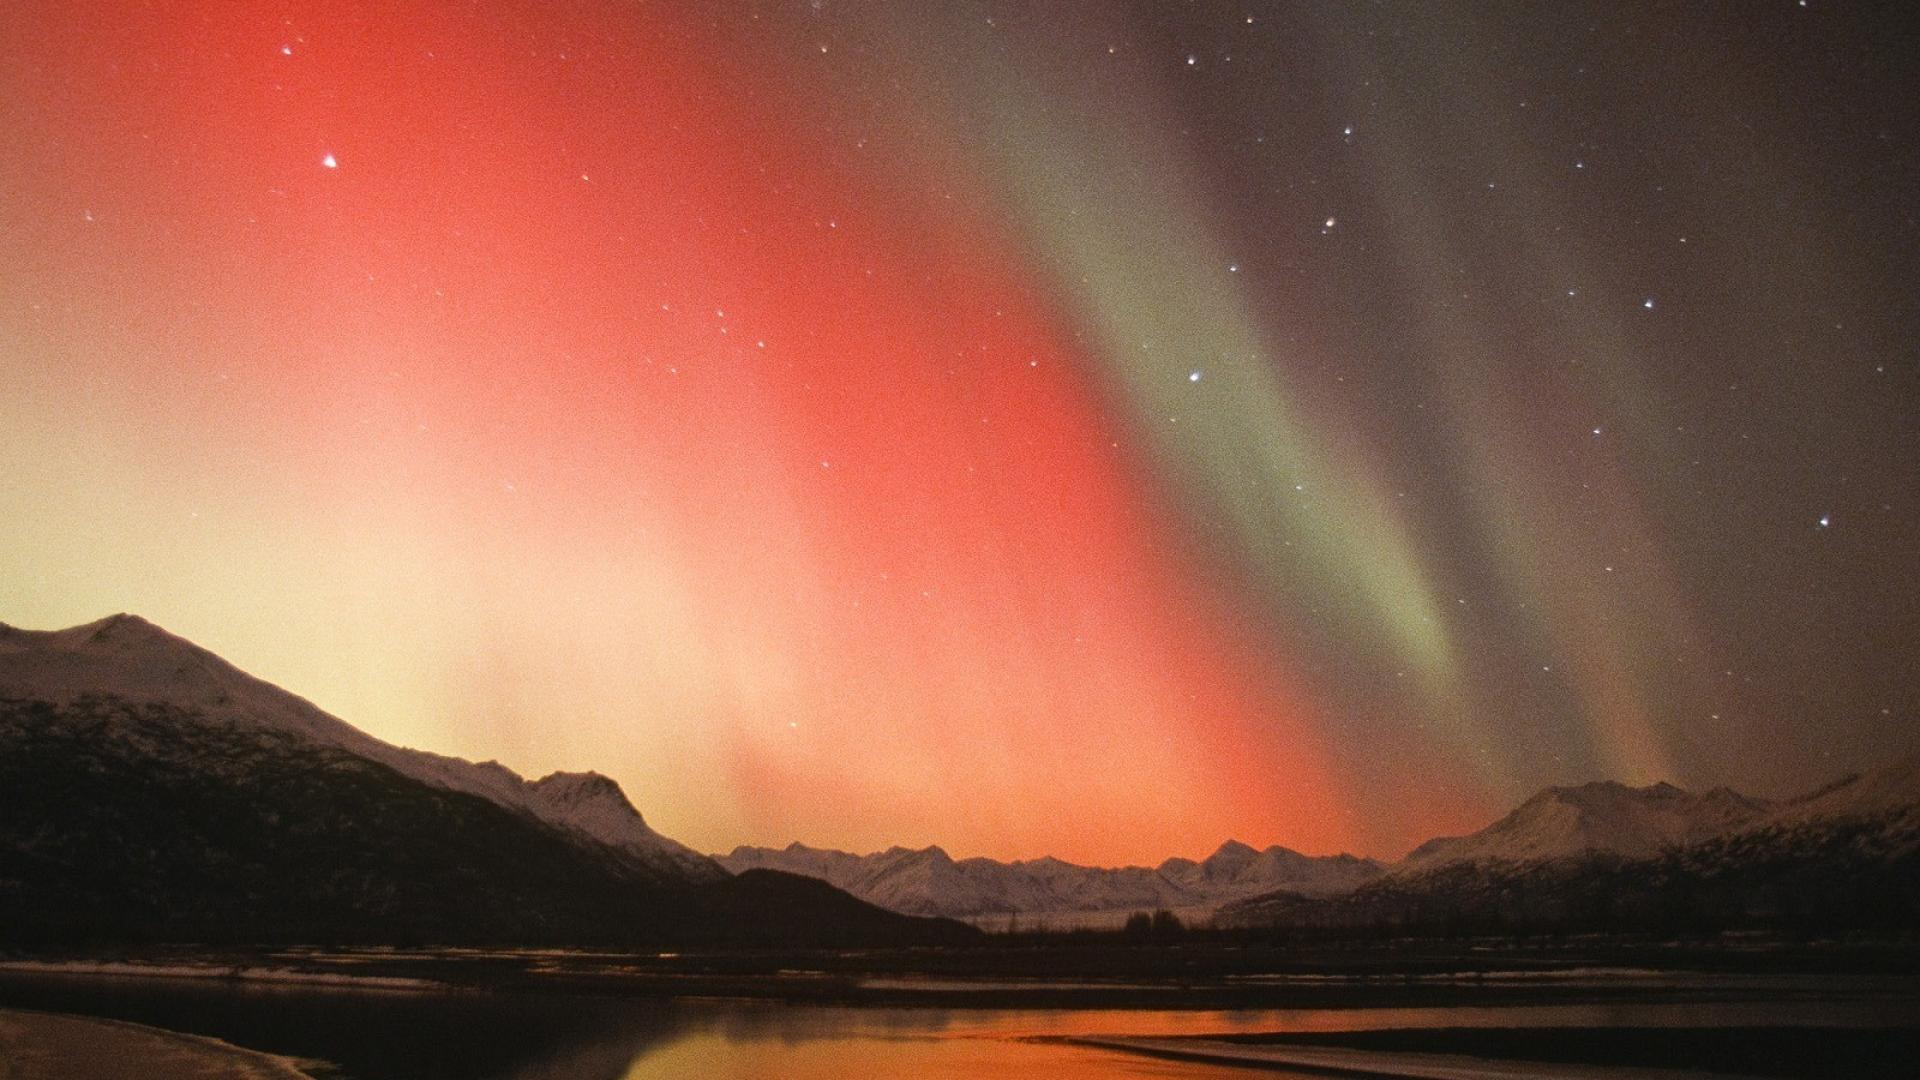 widescreen wallpapers x aurora borealis - photo #4